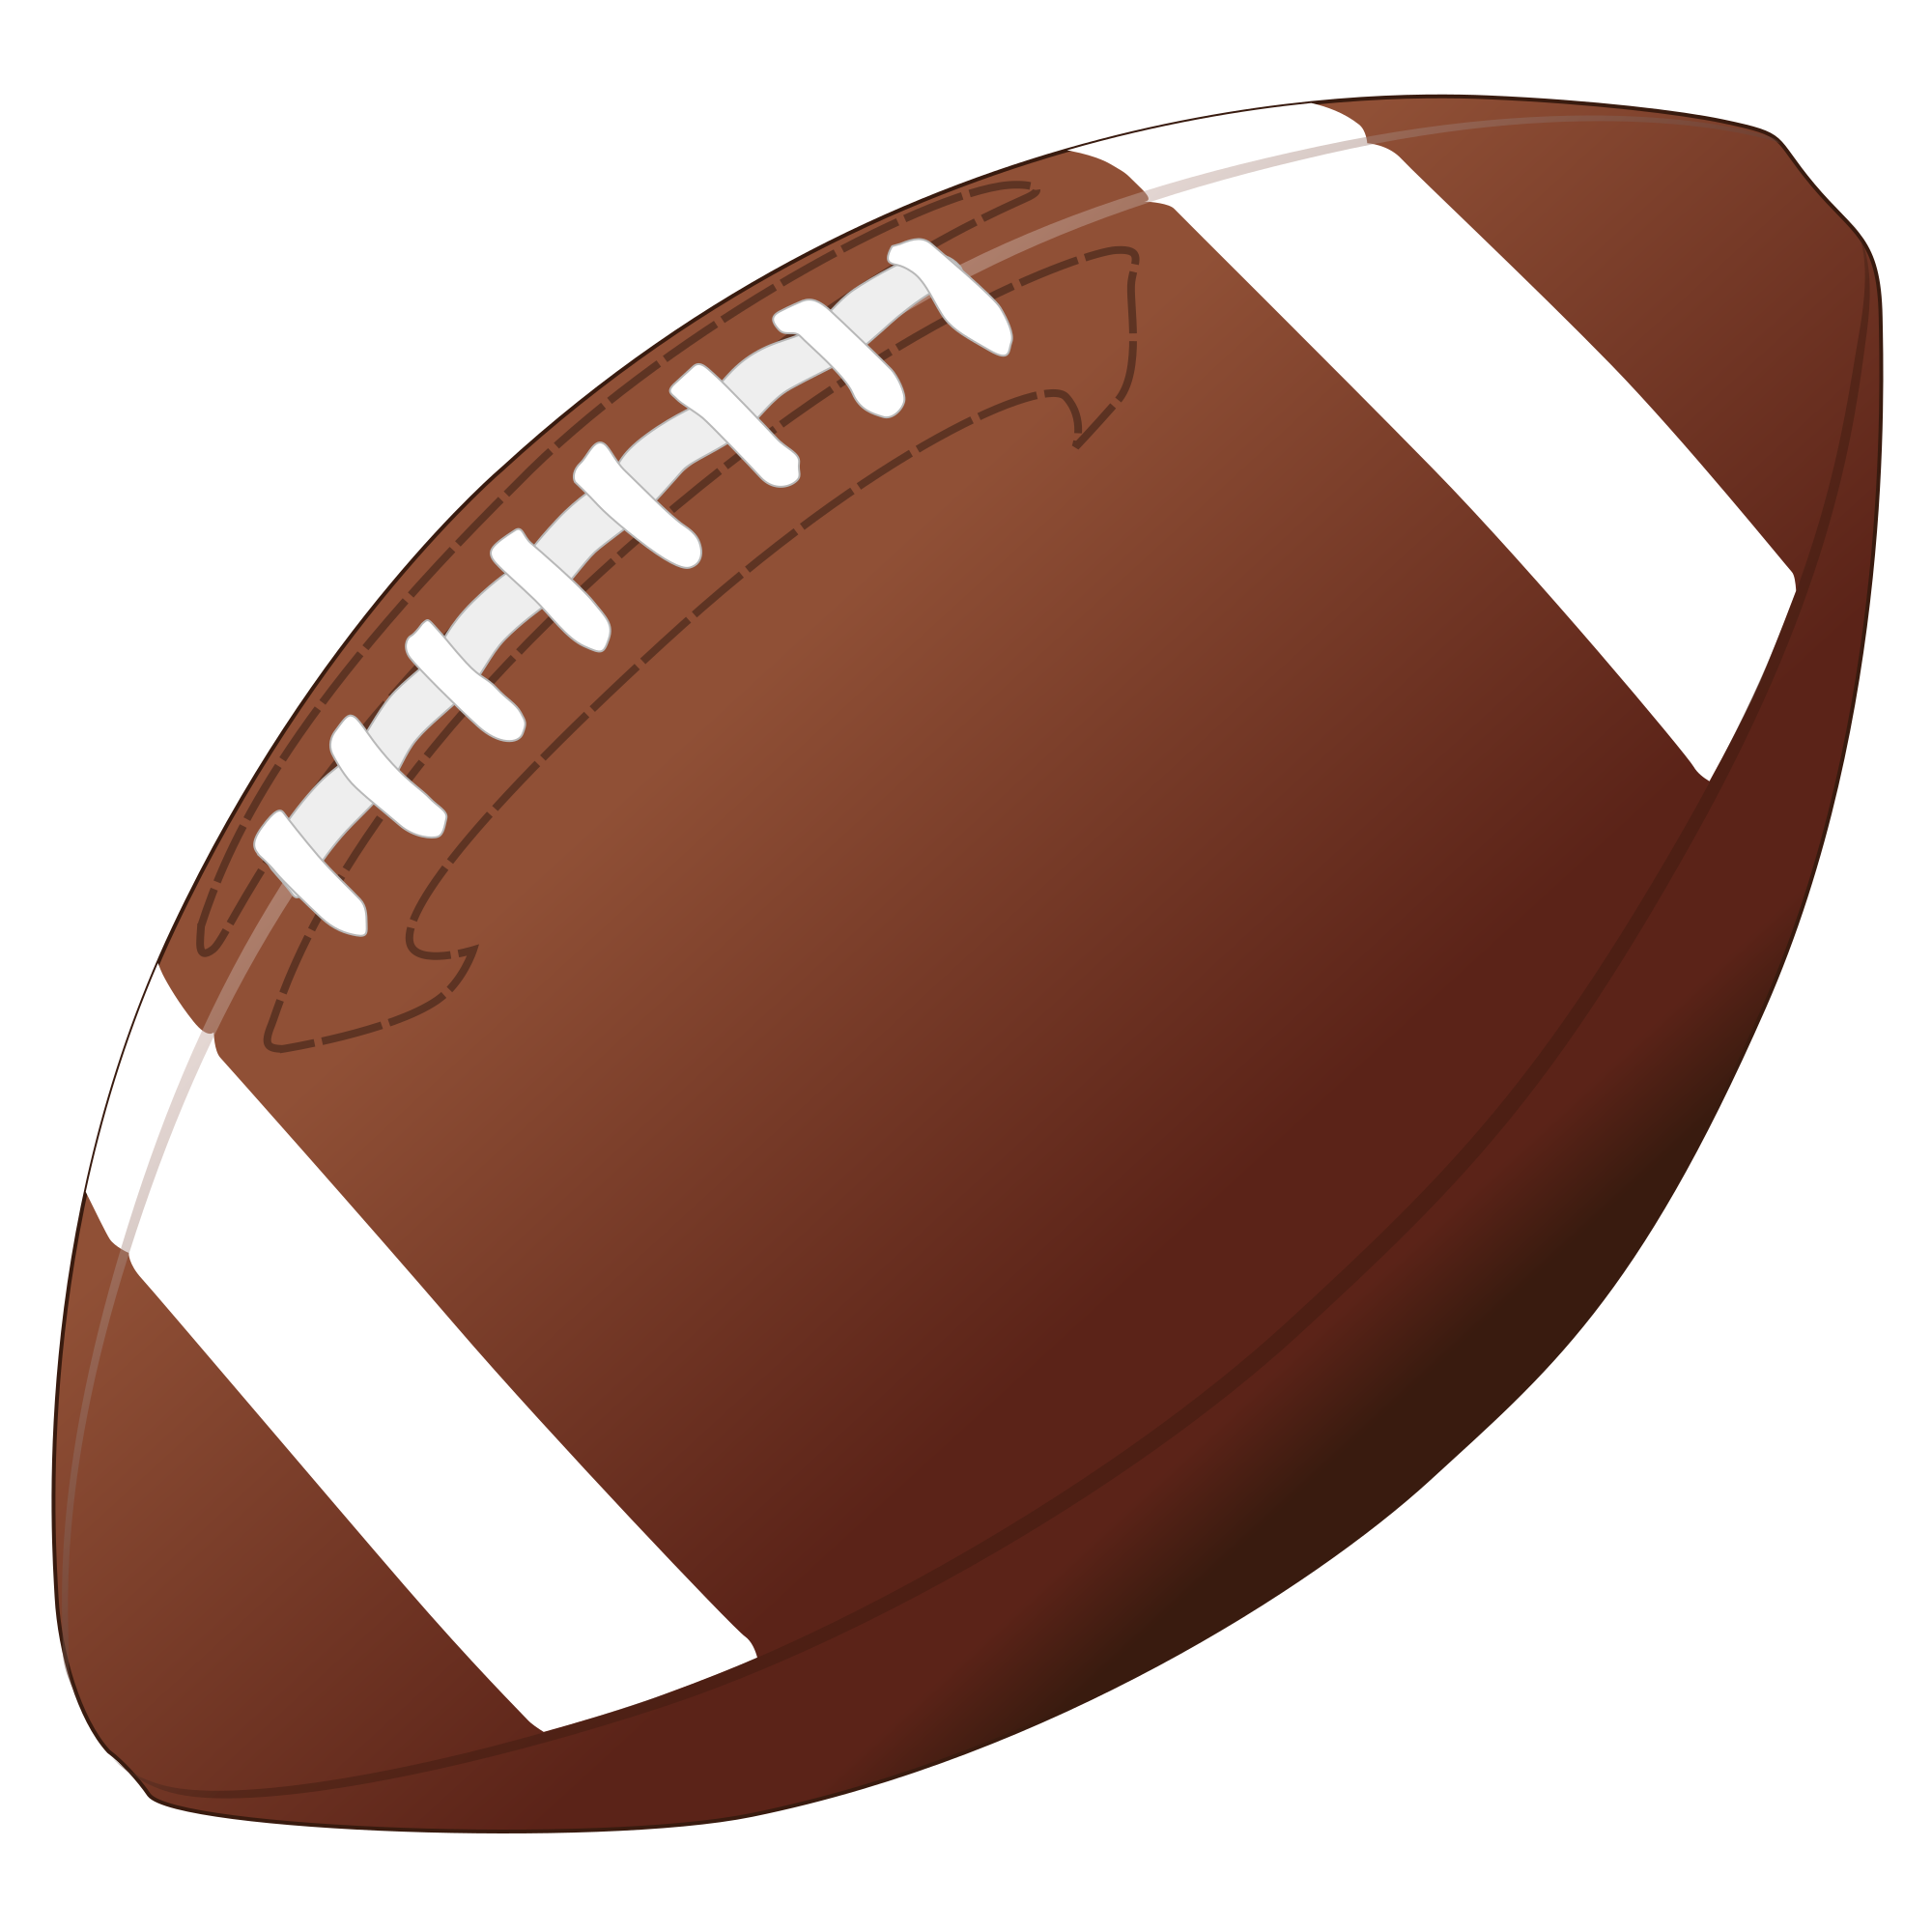 Browns football clipart png transparent American Football PNG Image - PurePNG | Free transparent CC0 PNG ... png transparent